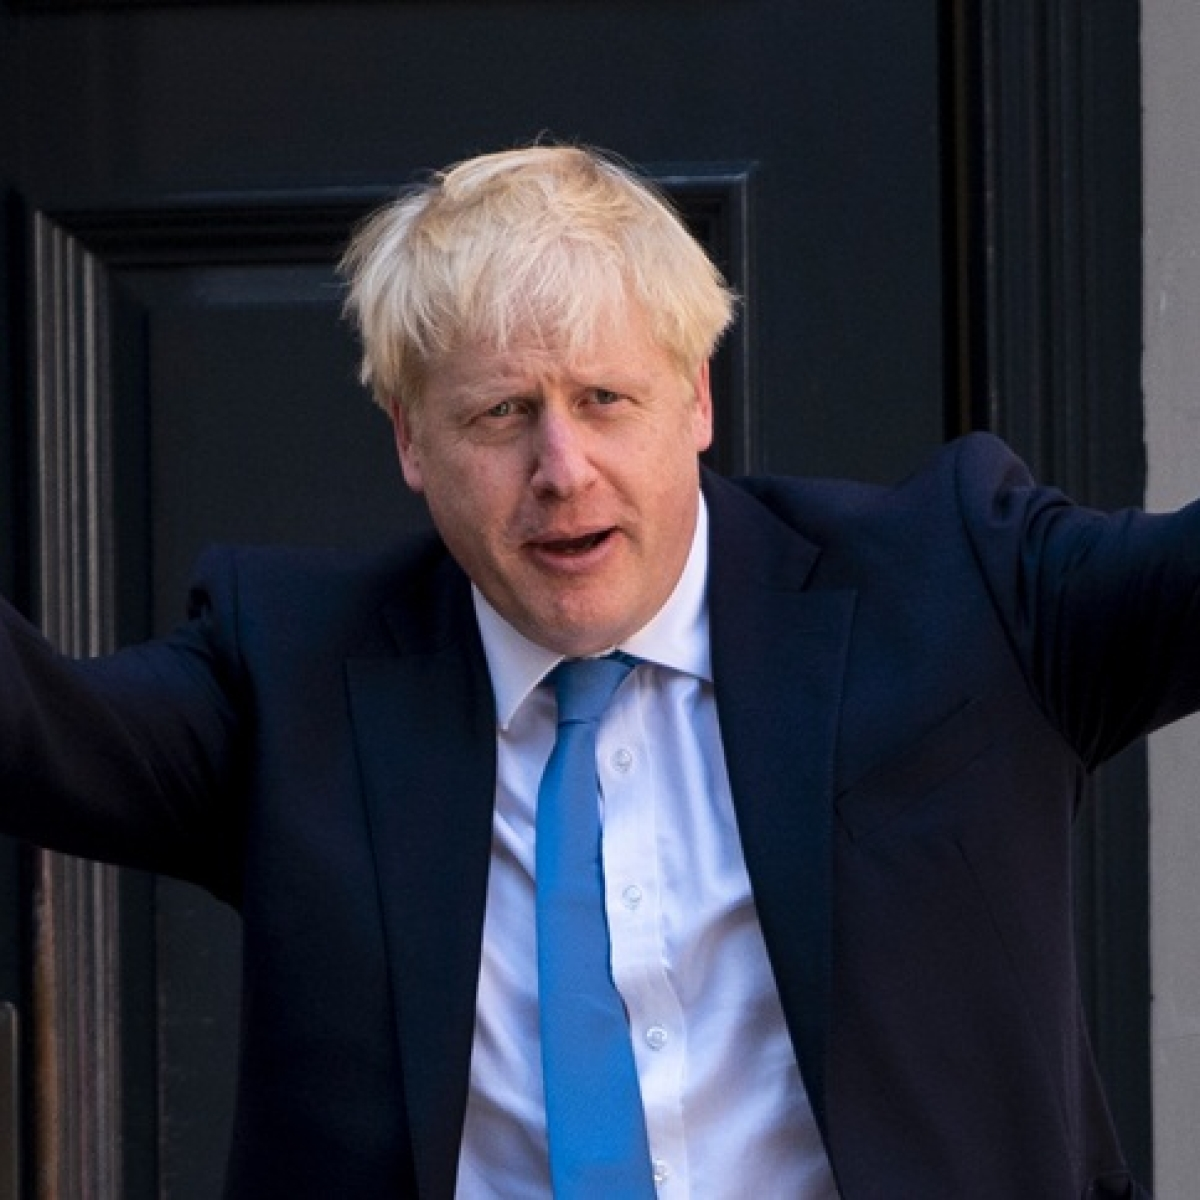 After Prince Charles, Boris Johnson Tests Positive For